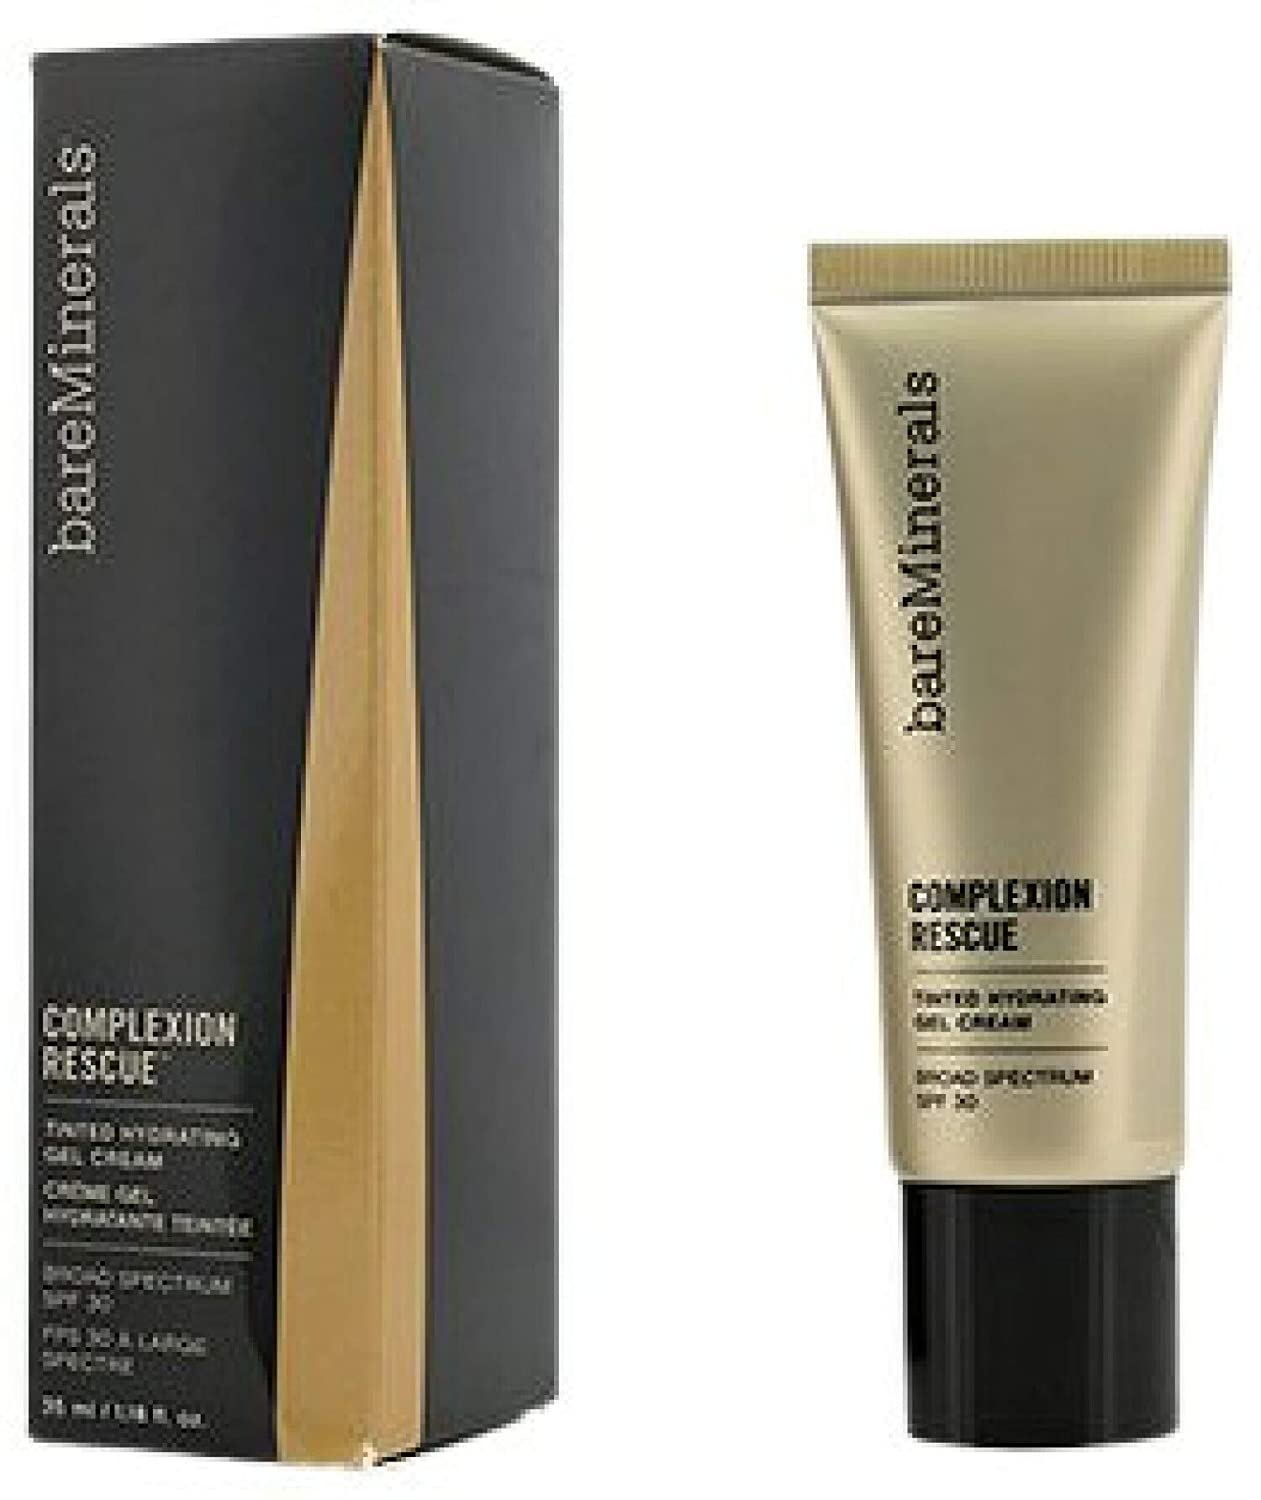 Complexion Rescue Tinted Hydrating Gel Cream SPF30 – #6.5 Desert